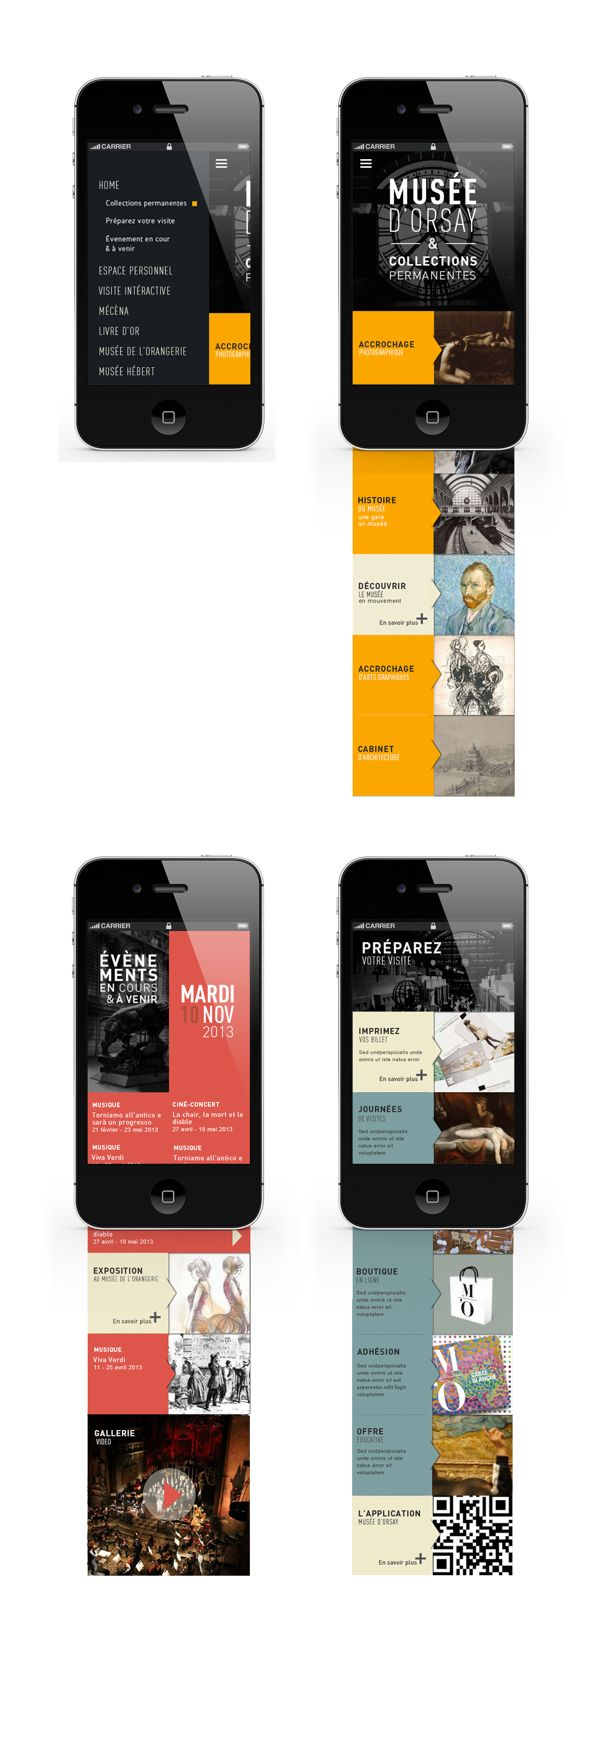 Orsay Museum by Jeremy Perrot-Minnot, via Behance, great way to display mobile design